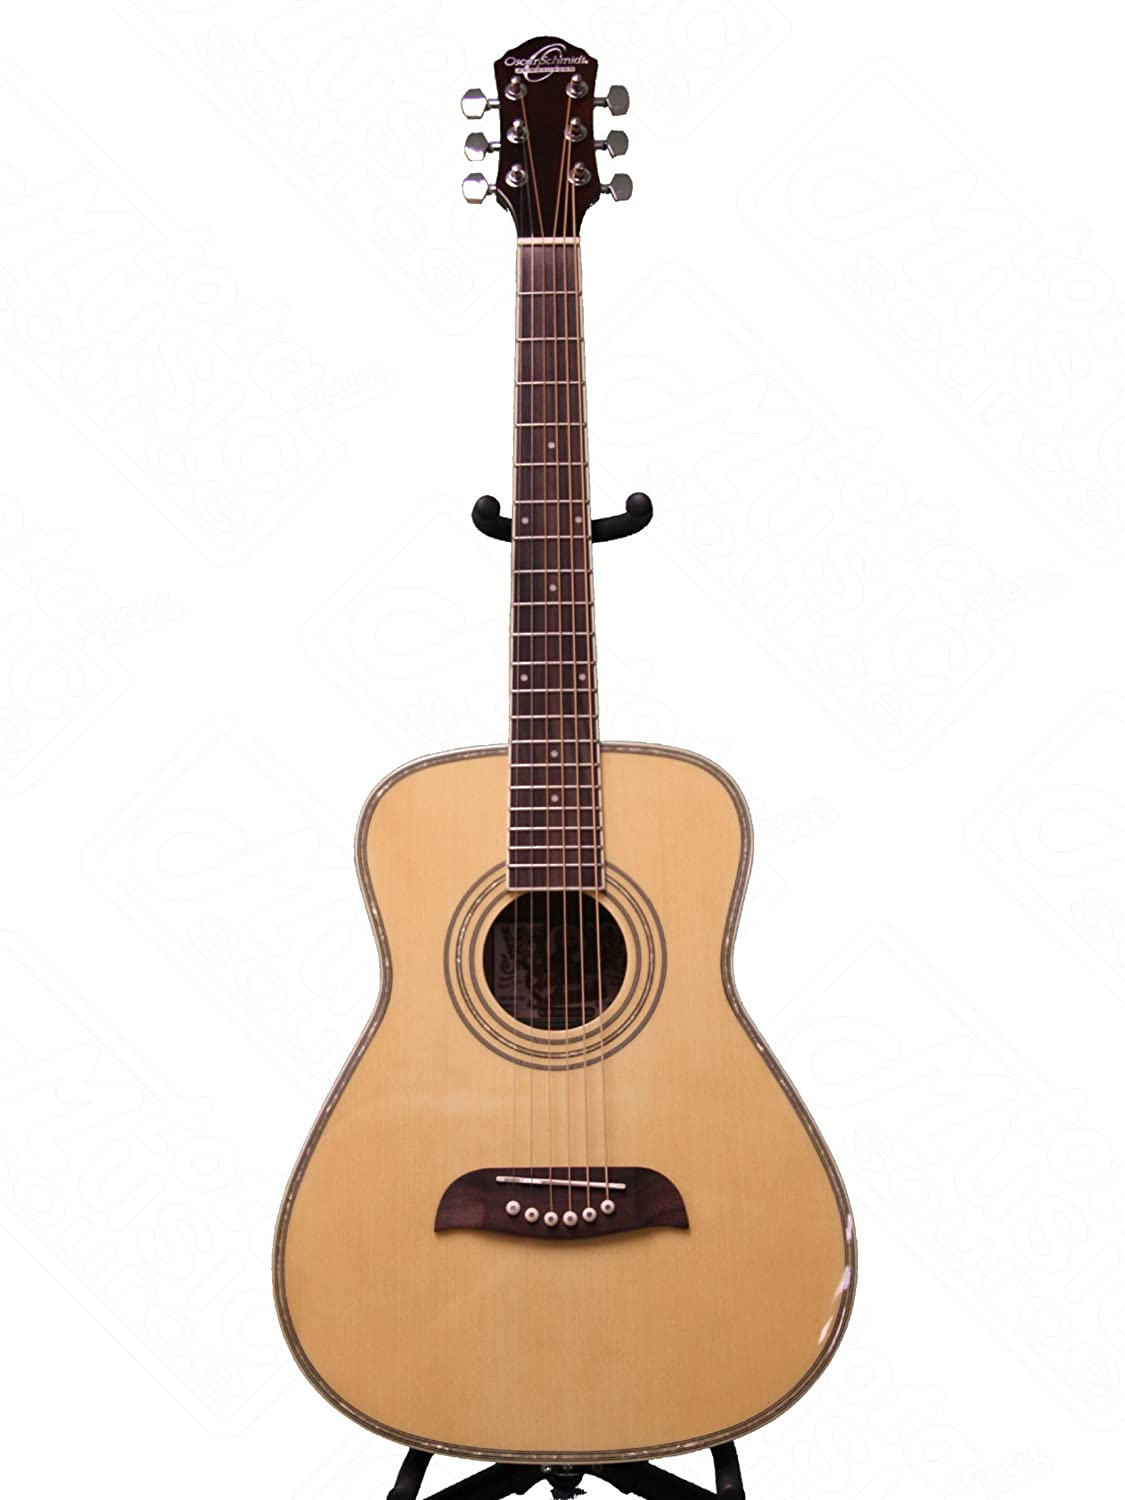 Left Hand Oscar Schmidt 1/2 Size Acoustic Guitar, Natural, Lefty, OGHSLH OGHS-LH